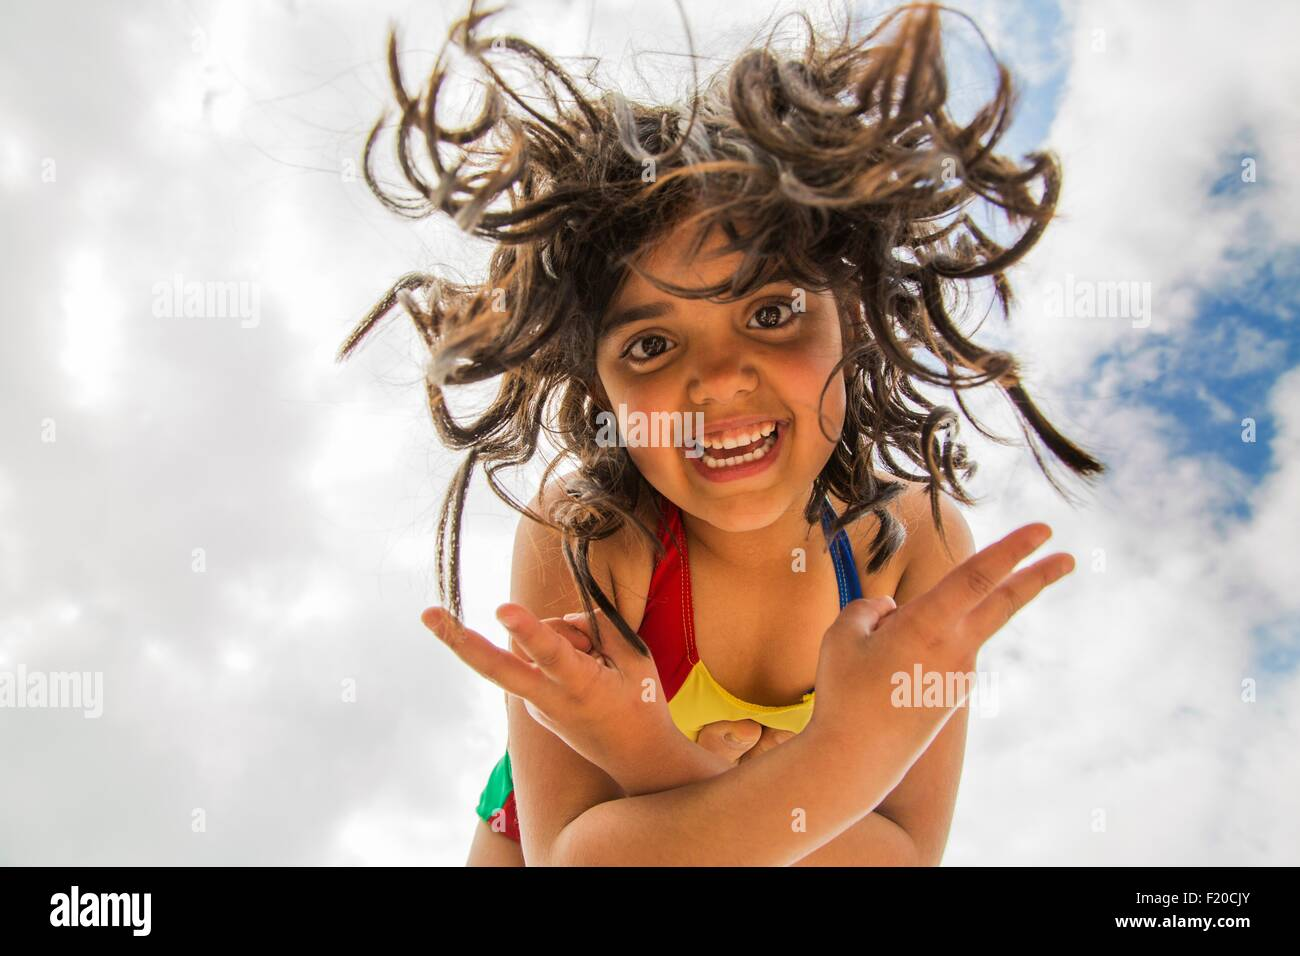 Low angle portrait of girl with long curly hair balancing on top of someones foot - Stock Image